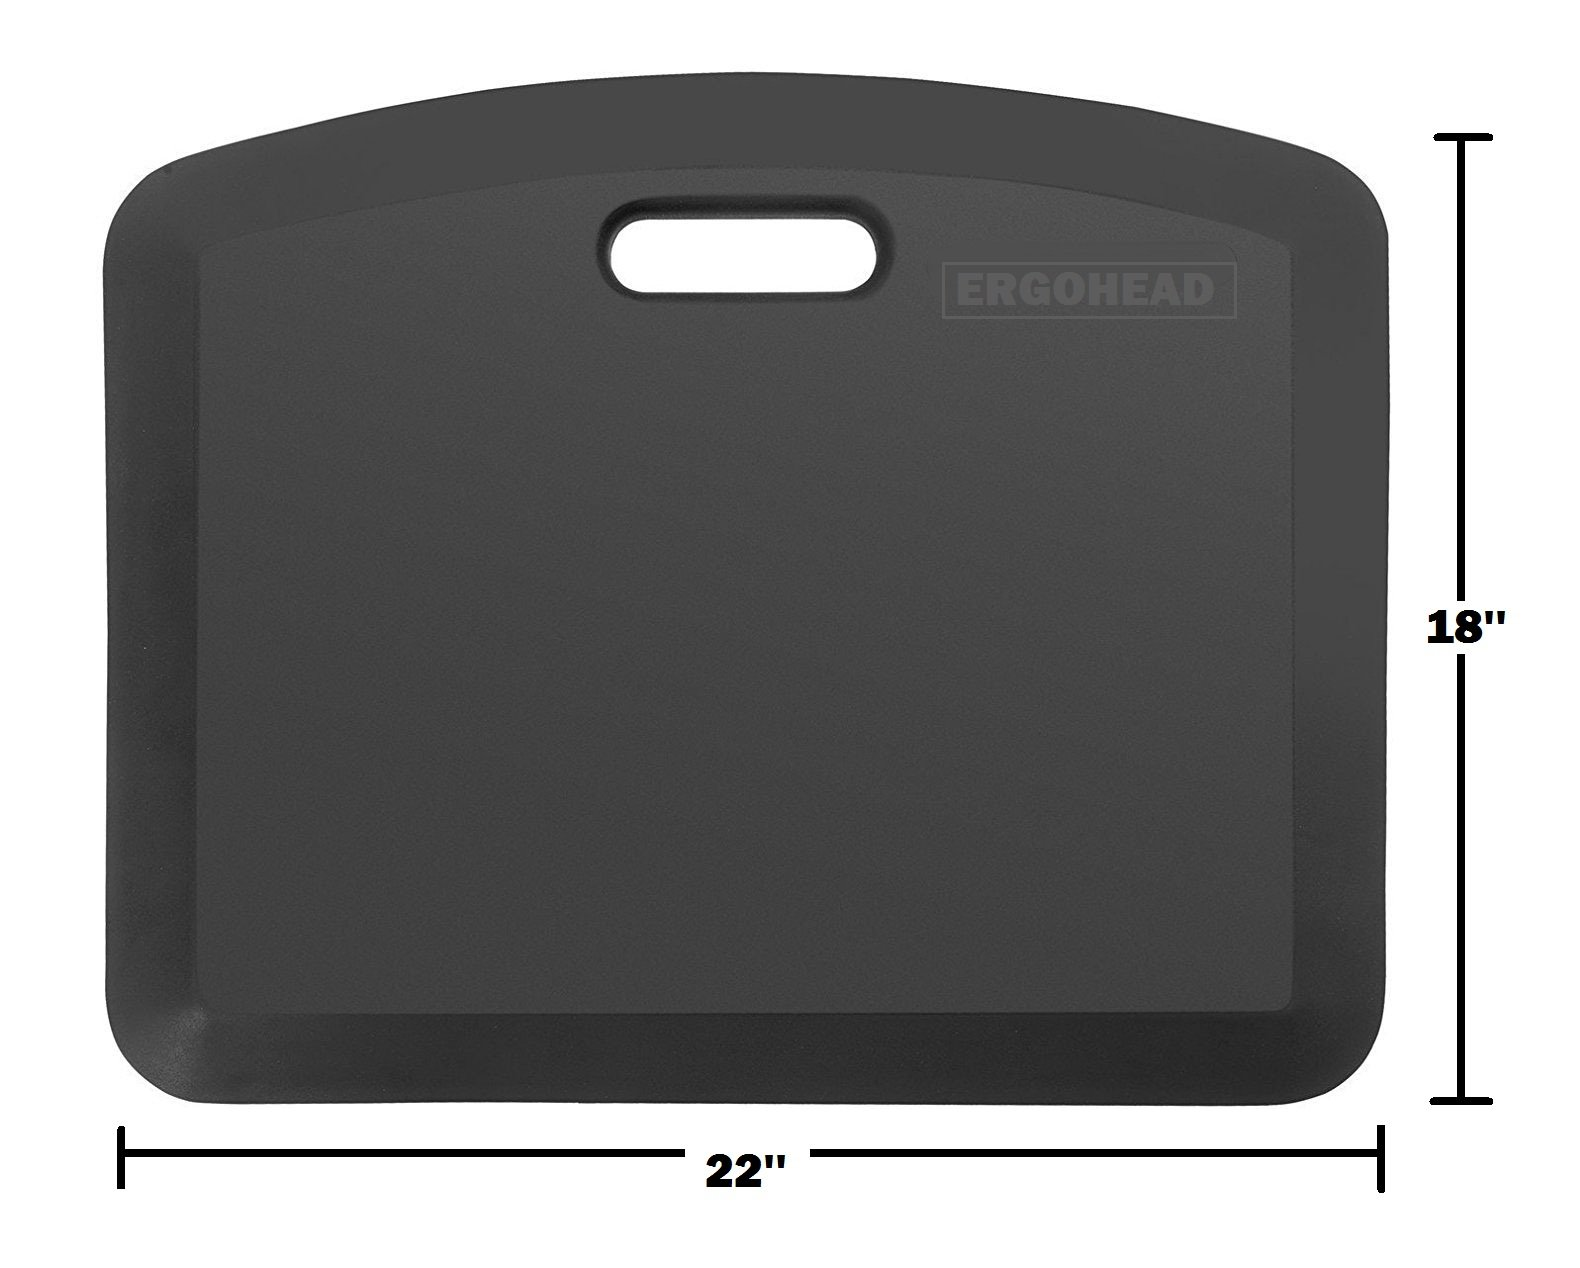 The Original Ergohead Anti-Fatigue Comfort Standing Mat, Ergonomically Engineered, Perfect For Standing Desk, Kitchen, Gardening and Garages, 18'' x 22'', Black